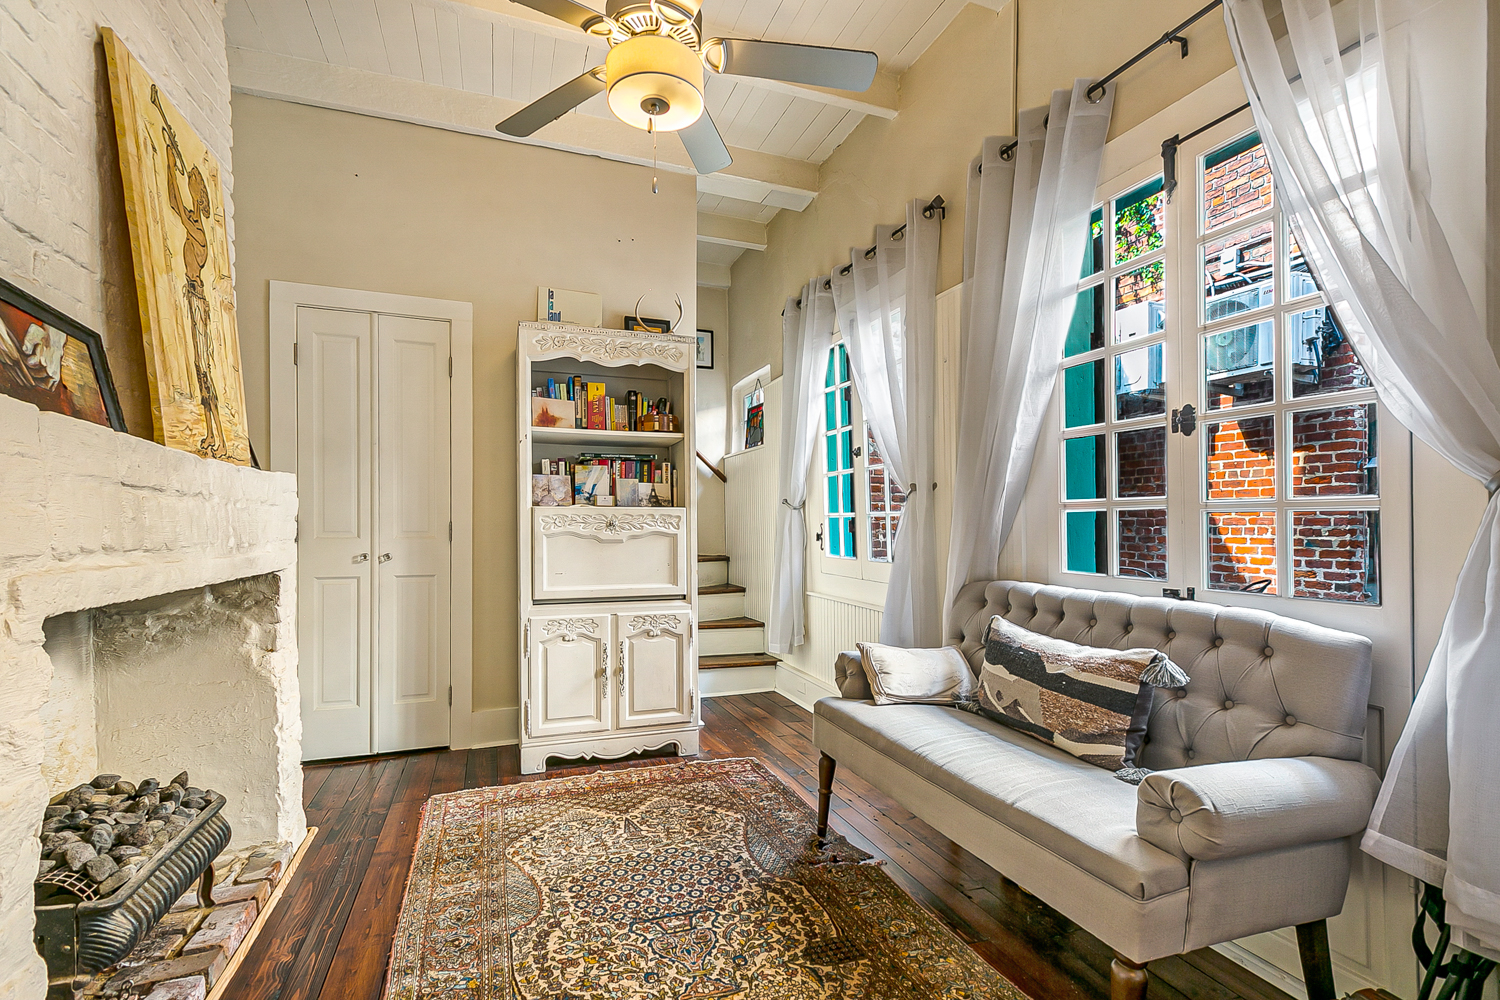 French Quarter, Condo, 1 beds, 2.0 baths, $2400 per month New Orleans Rental - devie image_6